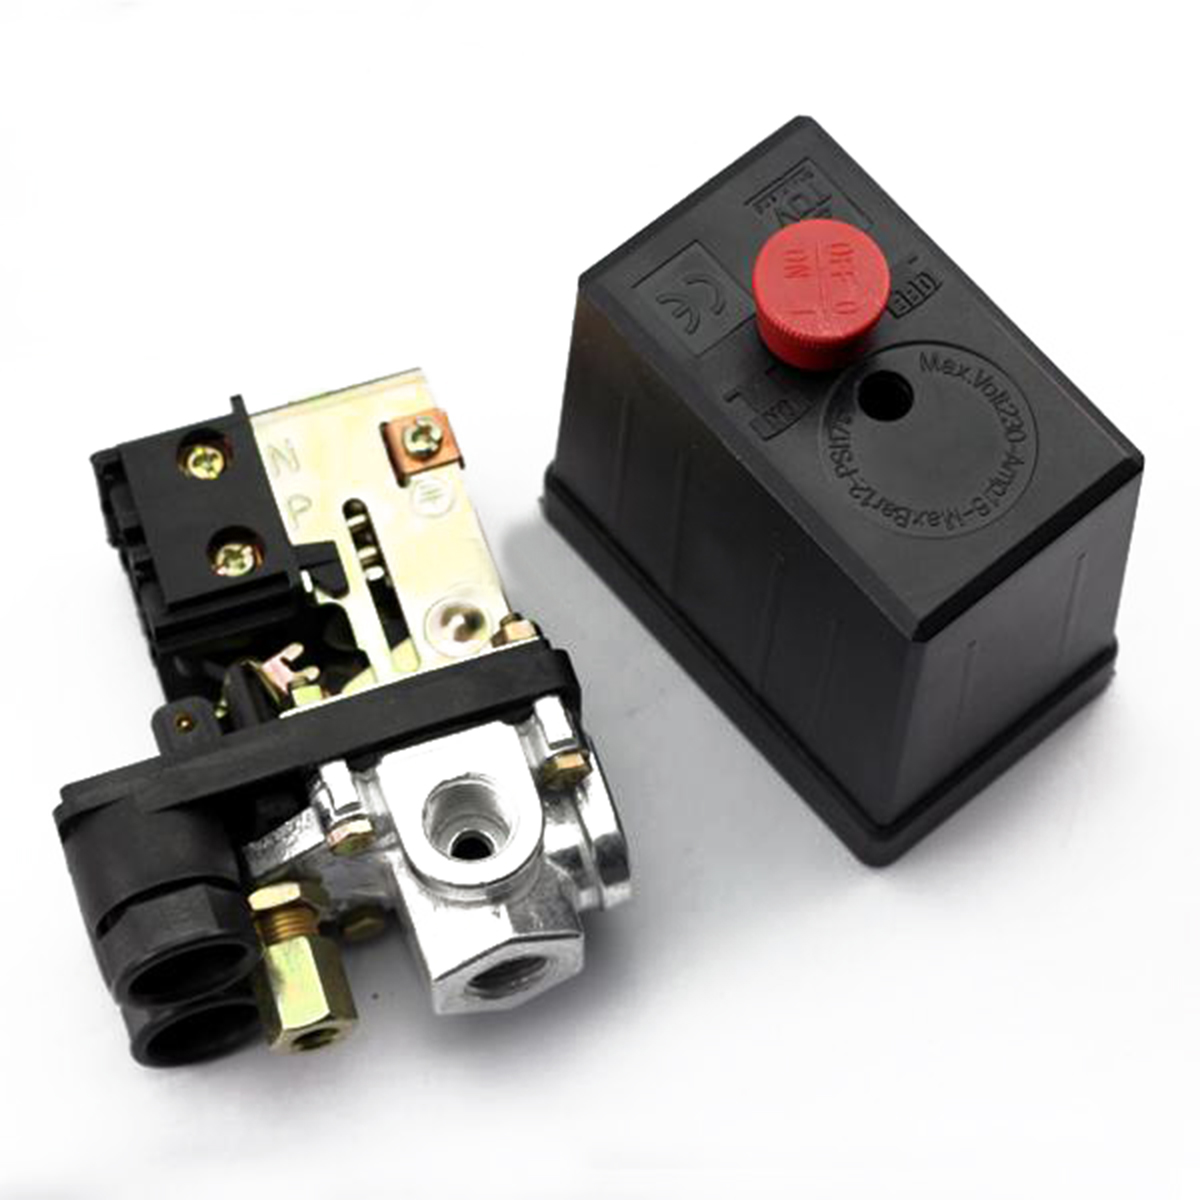 Black Heavy Duty Air Compressor Pressure Switch 240V 16A 90PSI -120PSI Mayitr Practical Auto Switch Control Valve 82*82*52mm high quality 1pc heavy duty air compressor pressure switch control valve 90 psi 120 psi air compressor switch control